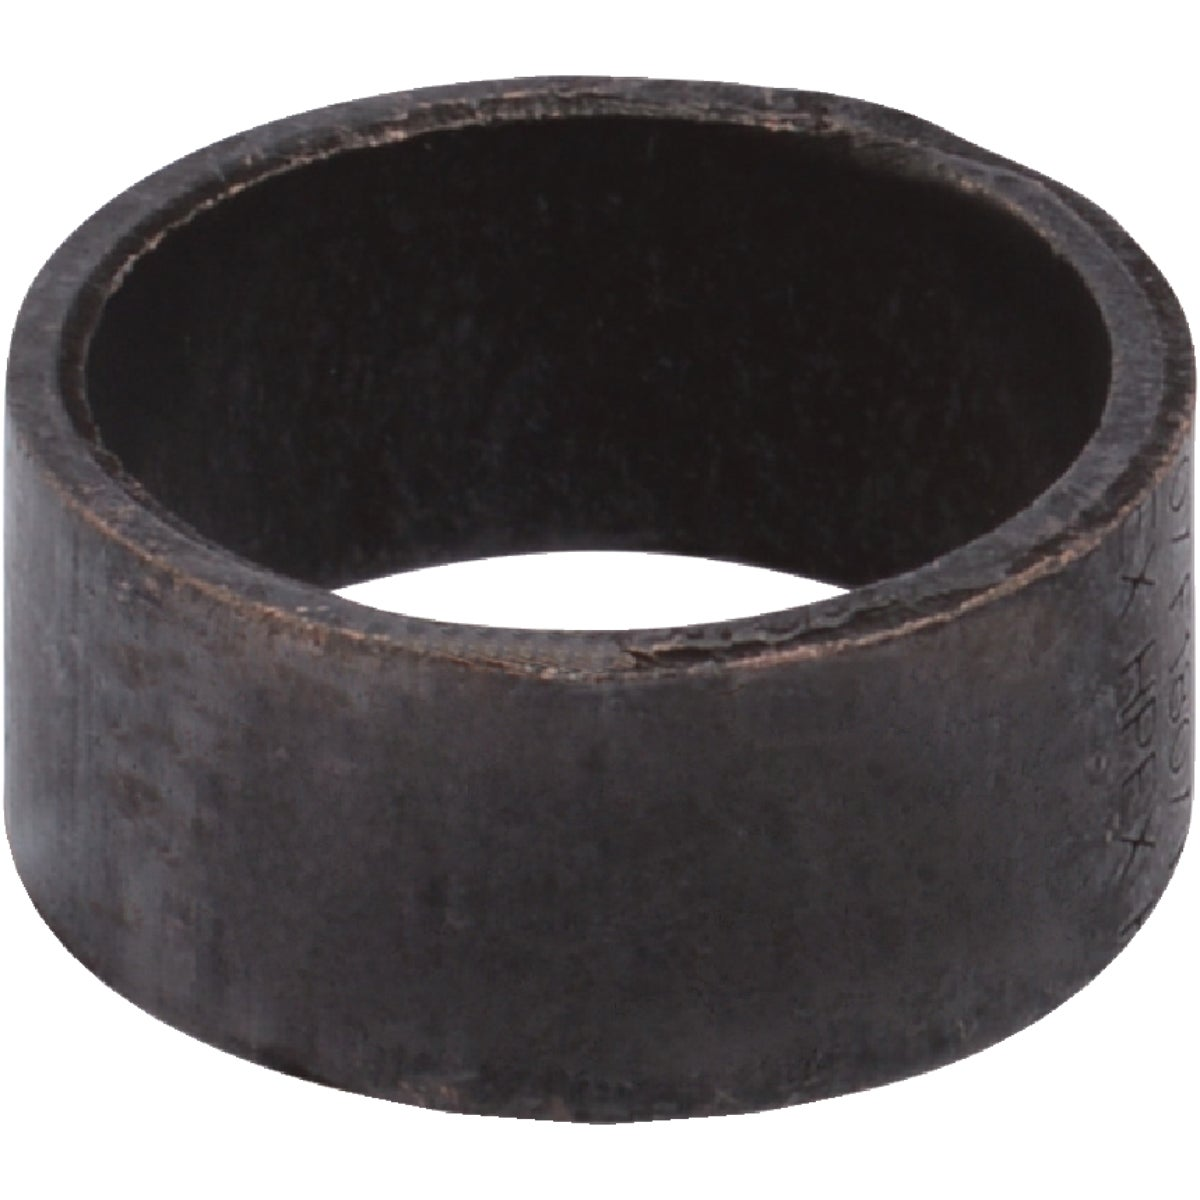 "100PK 1/2"" CRIMP RINGS - WP14C-08 by Watts Regulator Co"